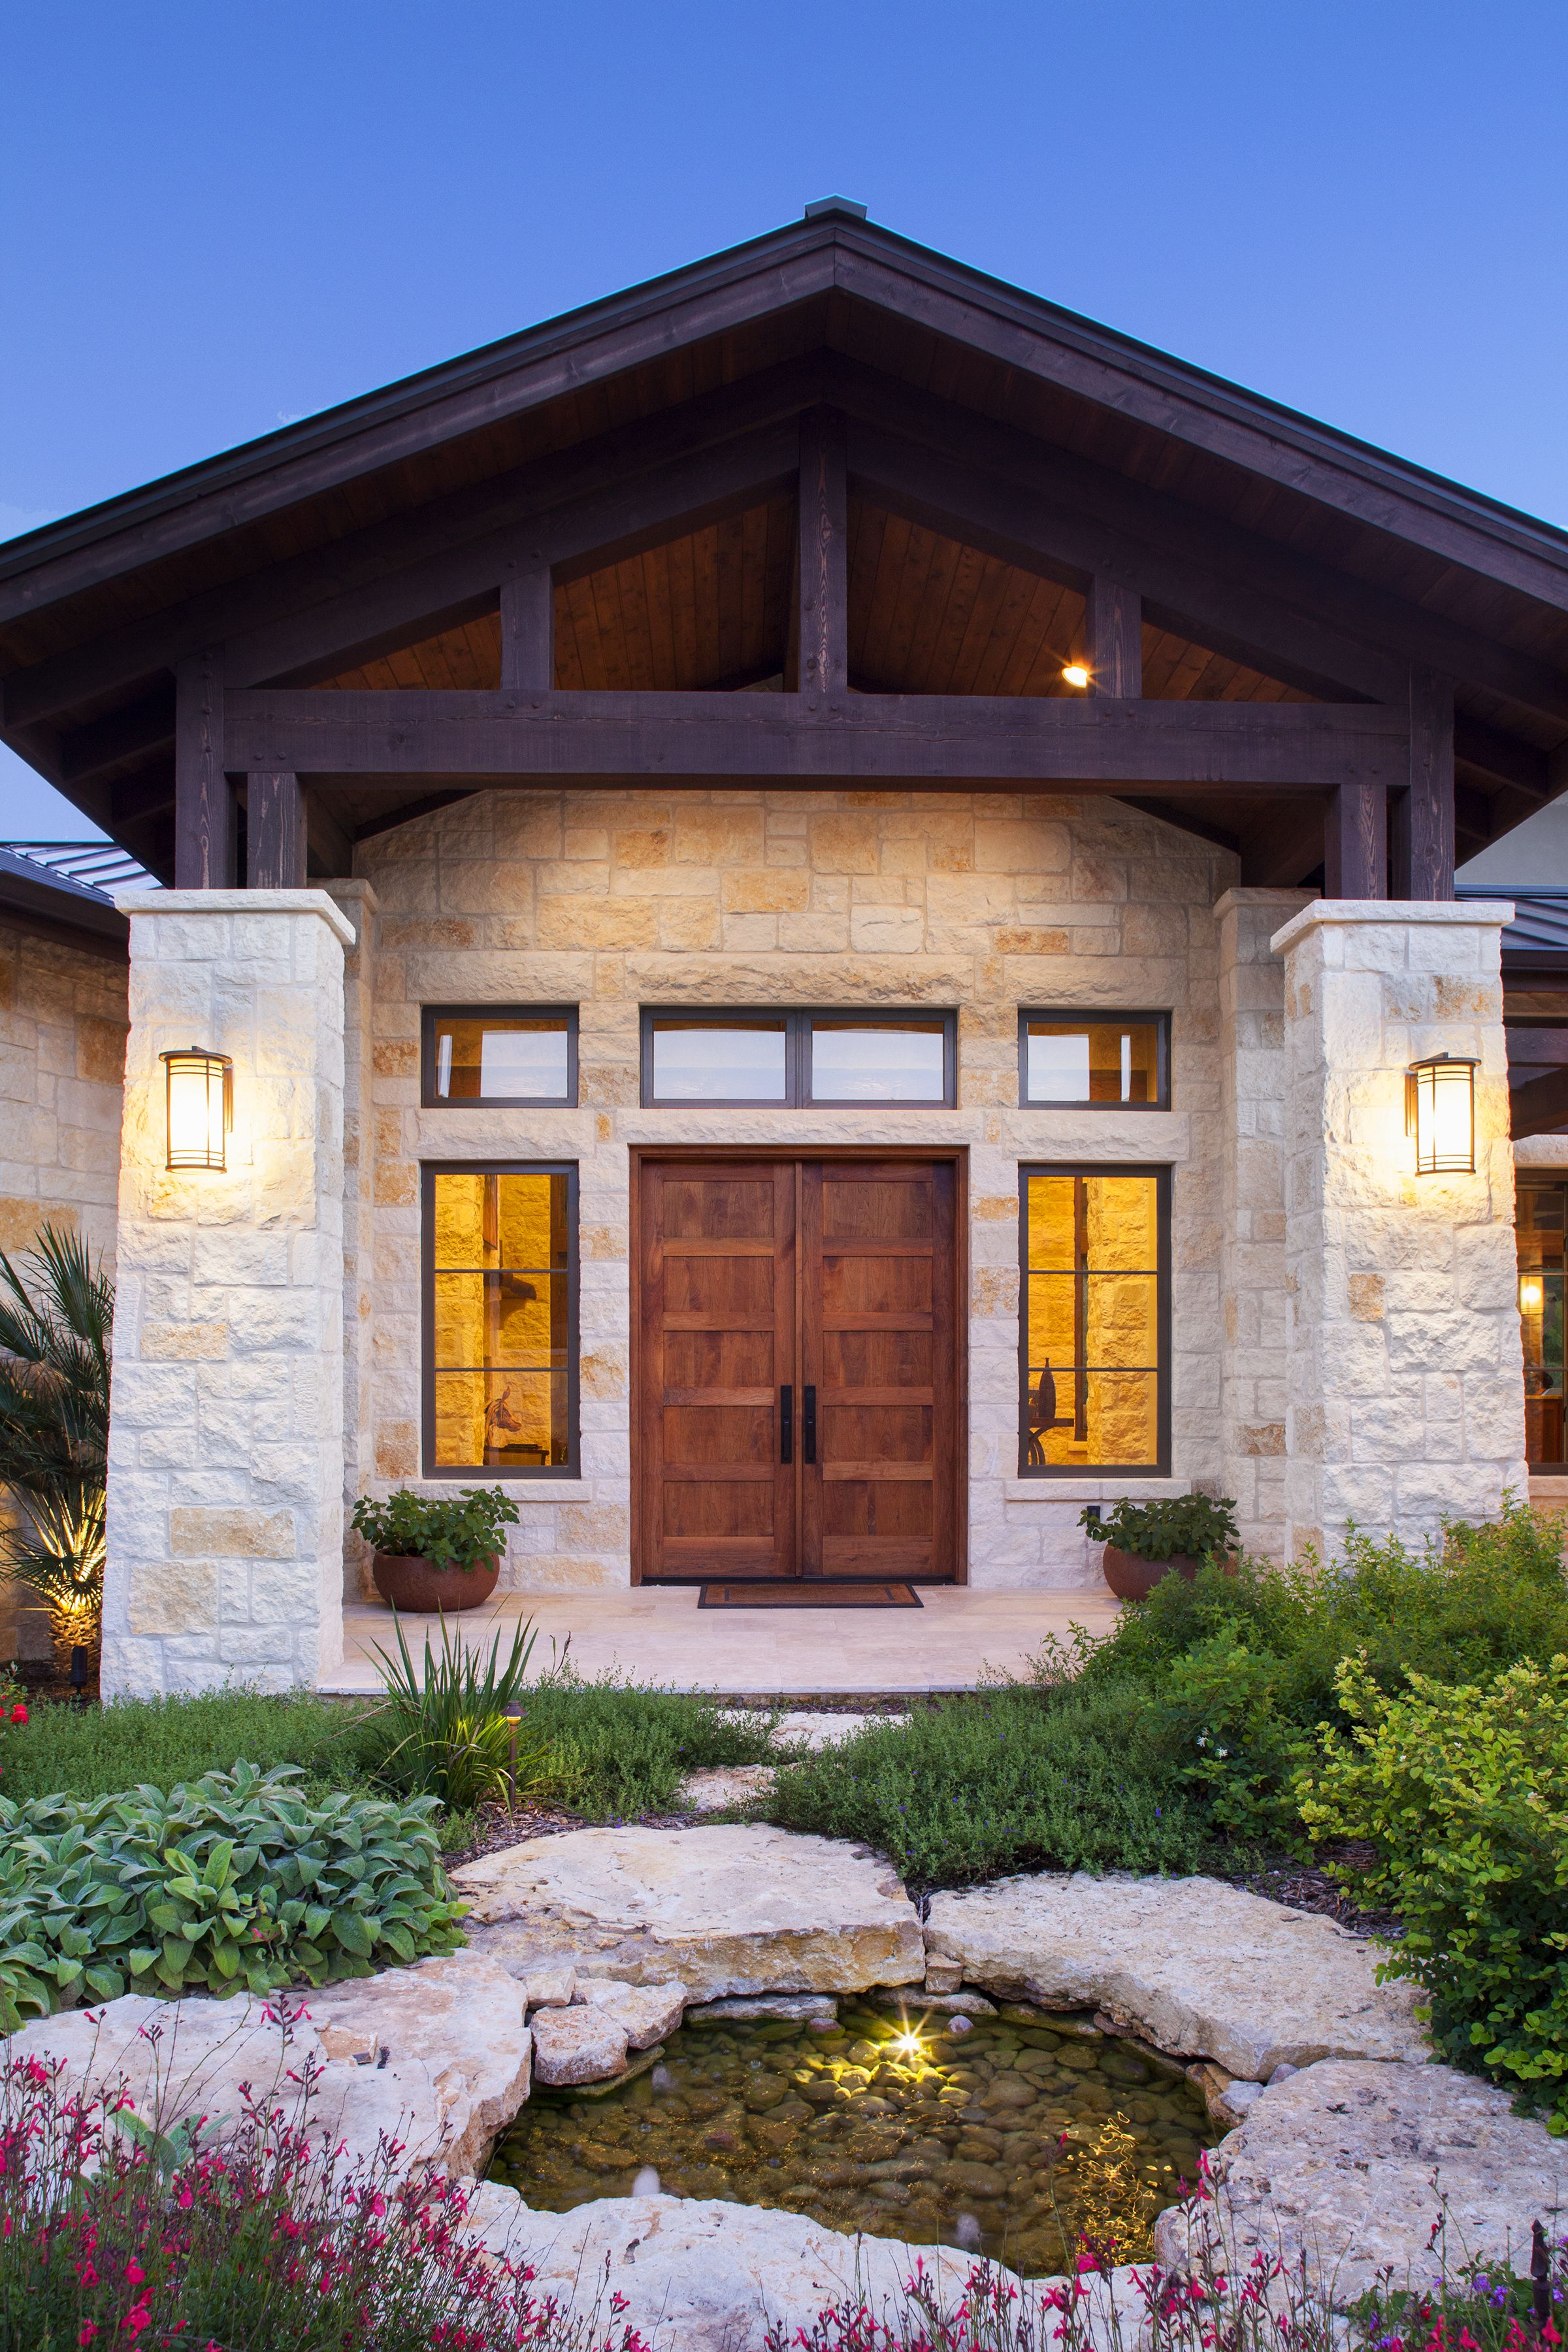 Stone Columns Wood Beam Details And Large Windows Add Interest To The Front Elevation Of This Texas T Ranch Style House Plans Hill Country Homes Rustic Entry